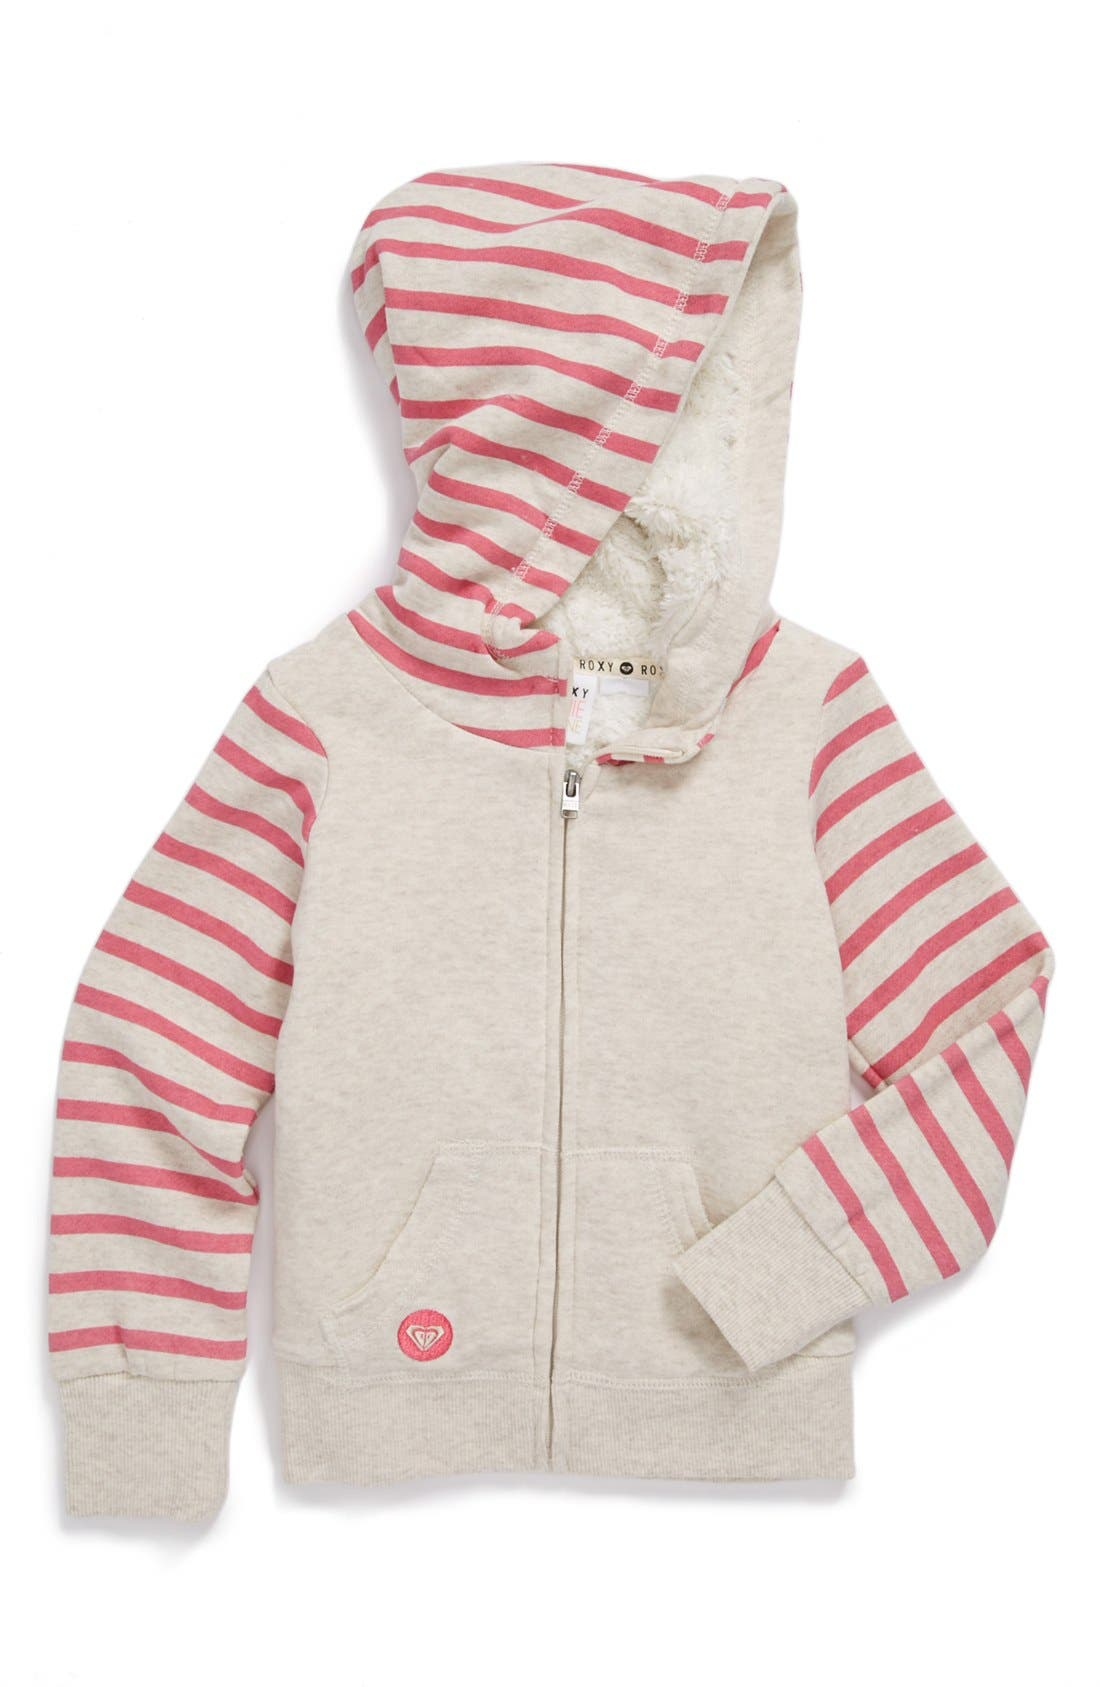 Alternate Image 1 Selected - Roxy 'Wild Awake' Full Zip Lined Hoodie (Little Girls)